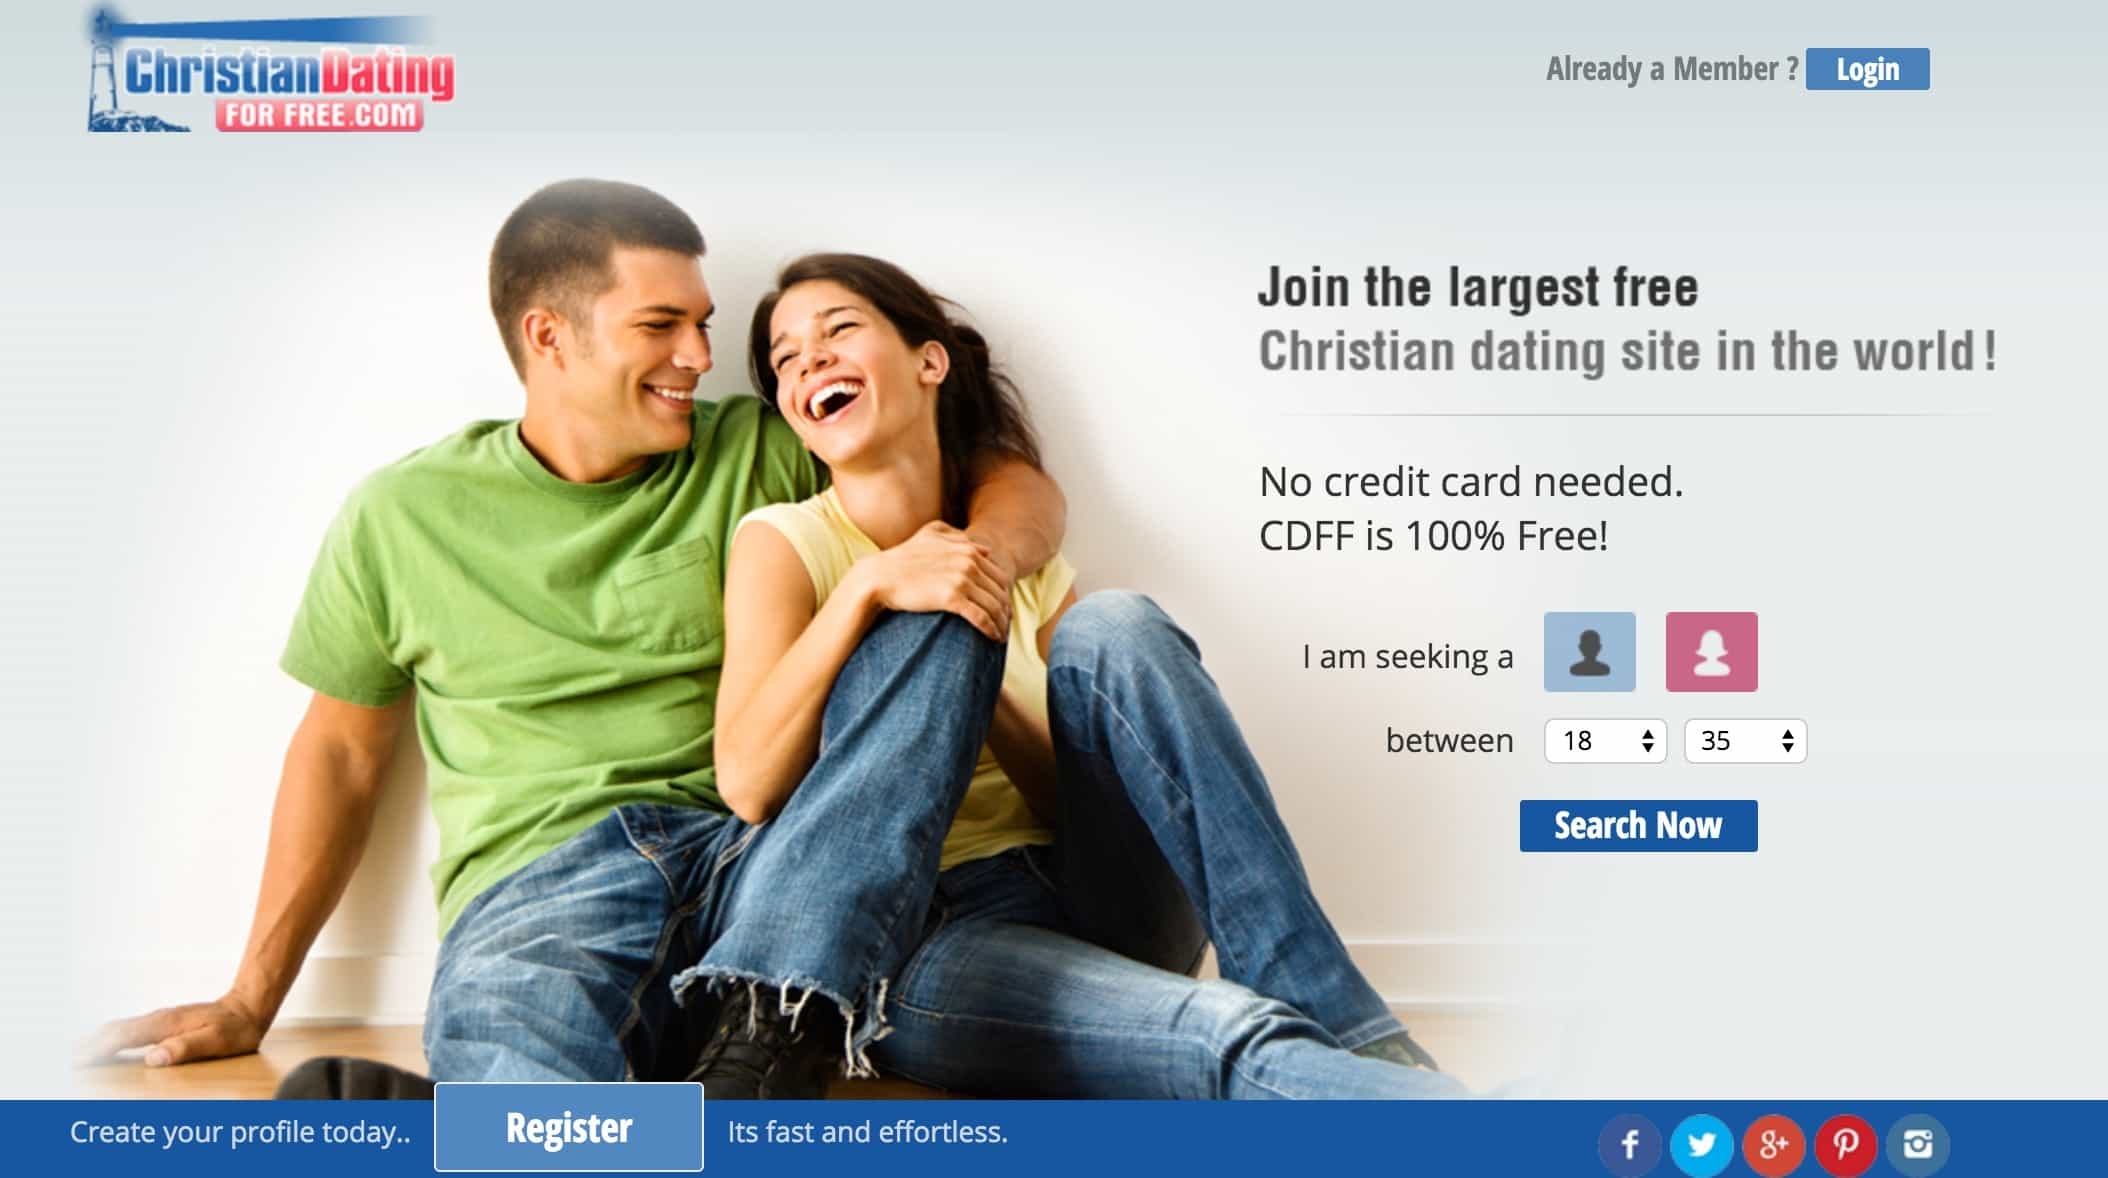 Facebook Alternative Sites for Christians